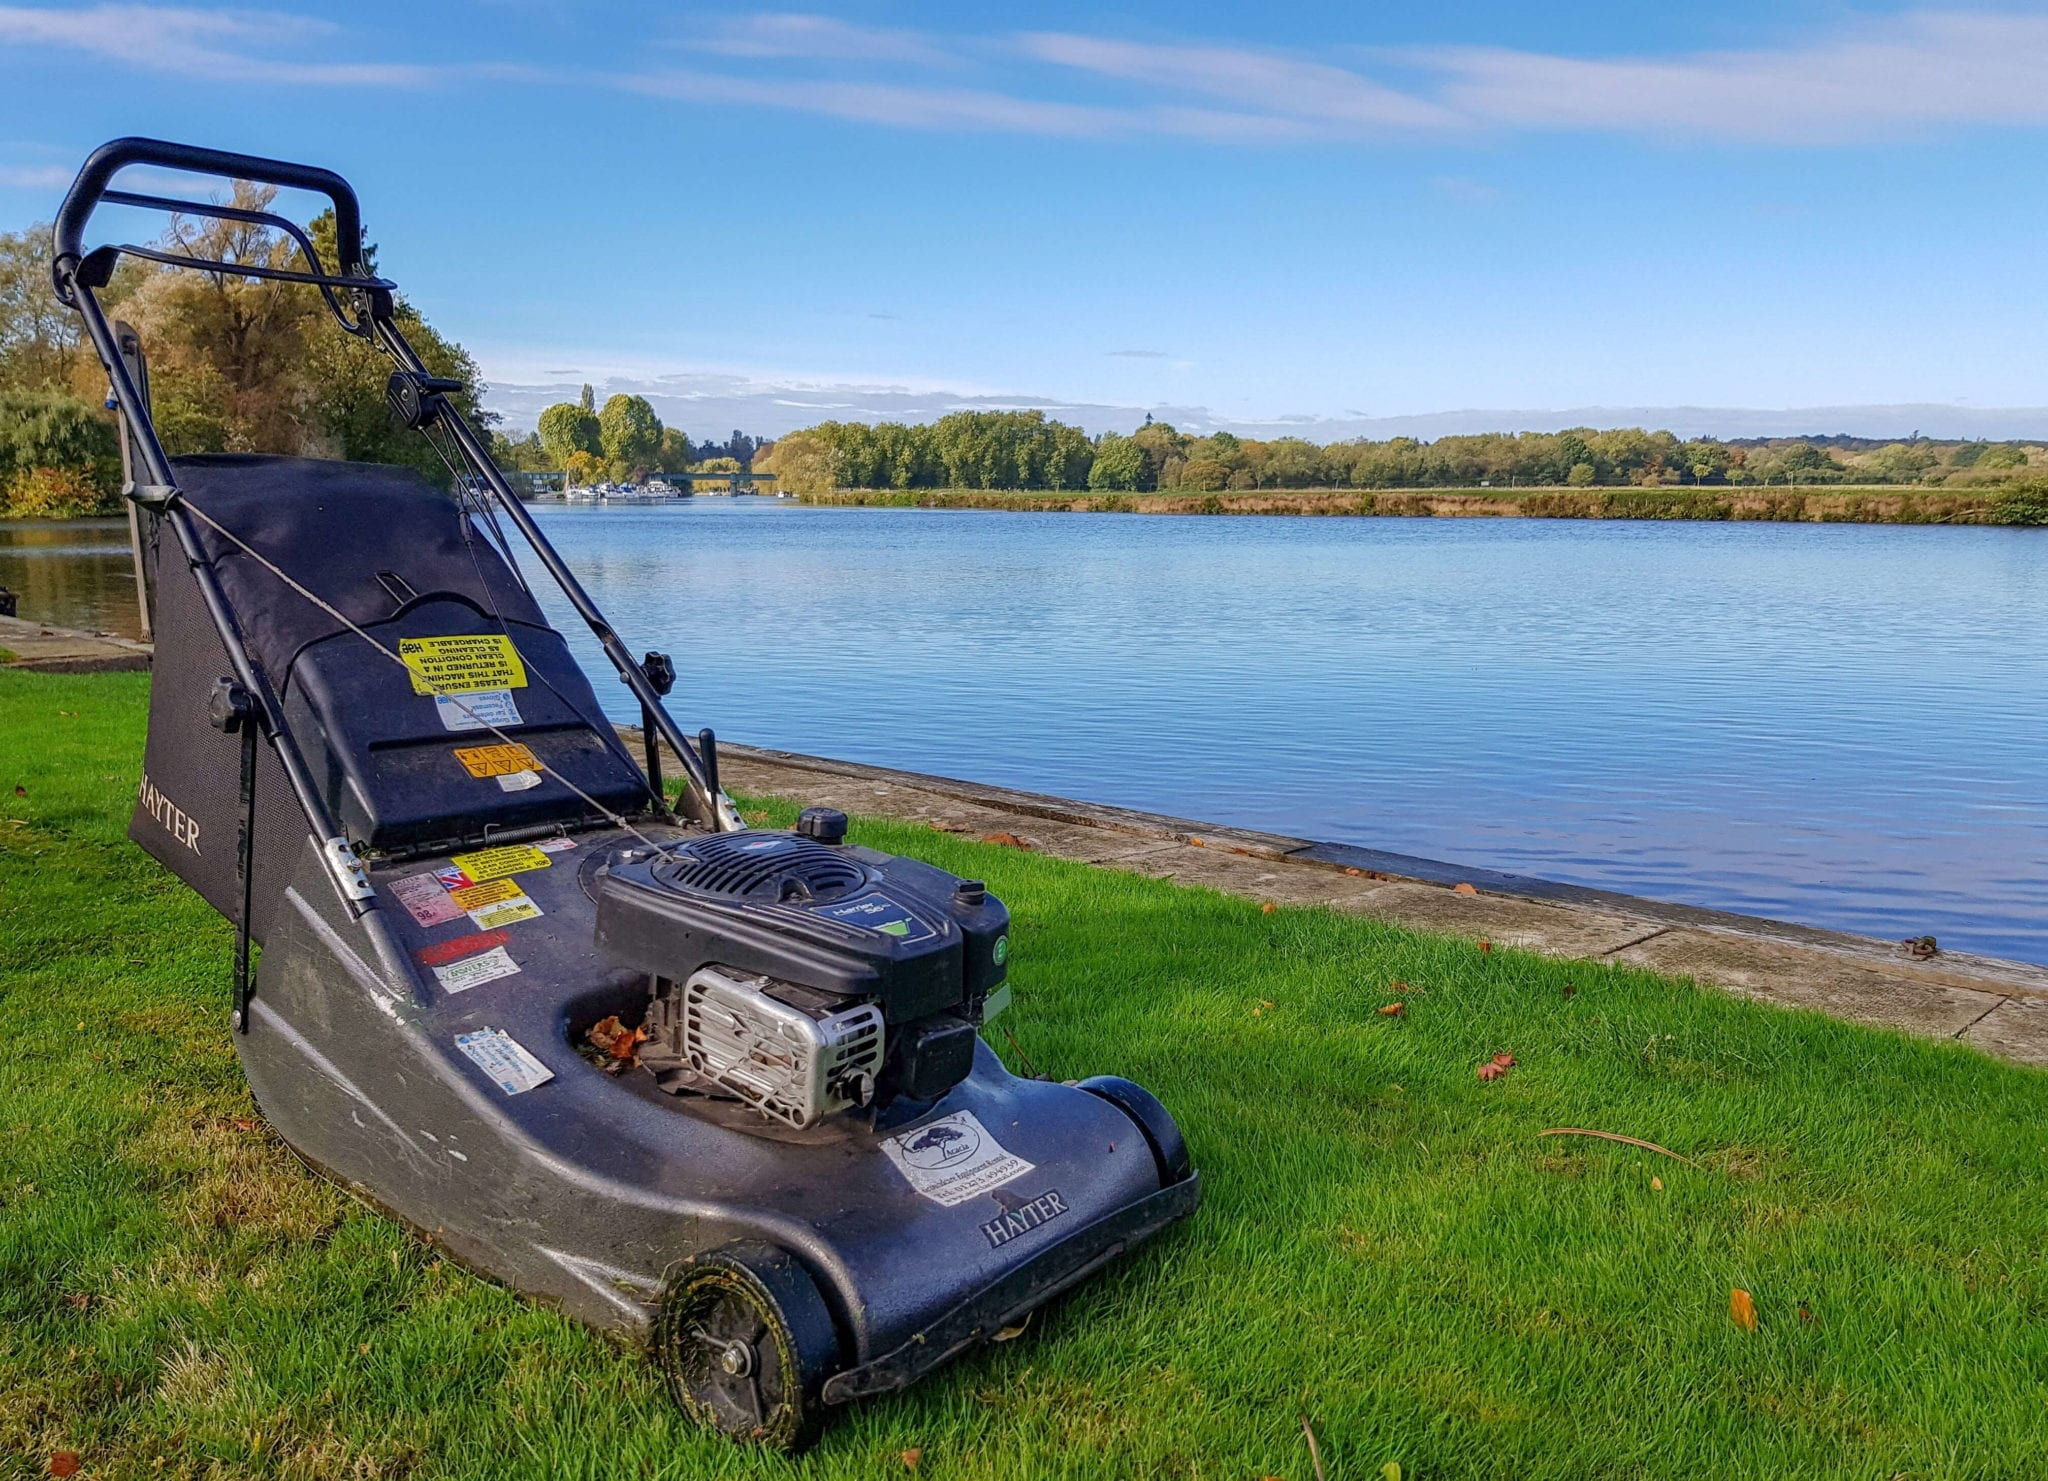 Lawnmower in front of lake